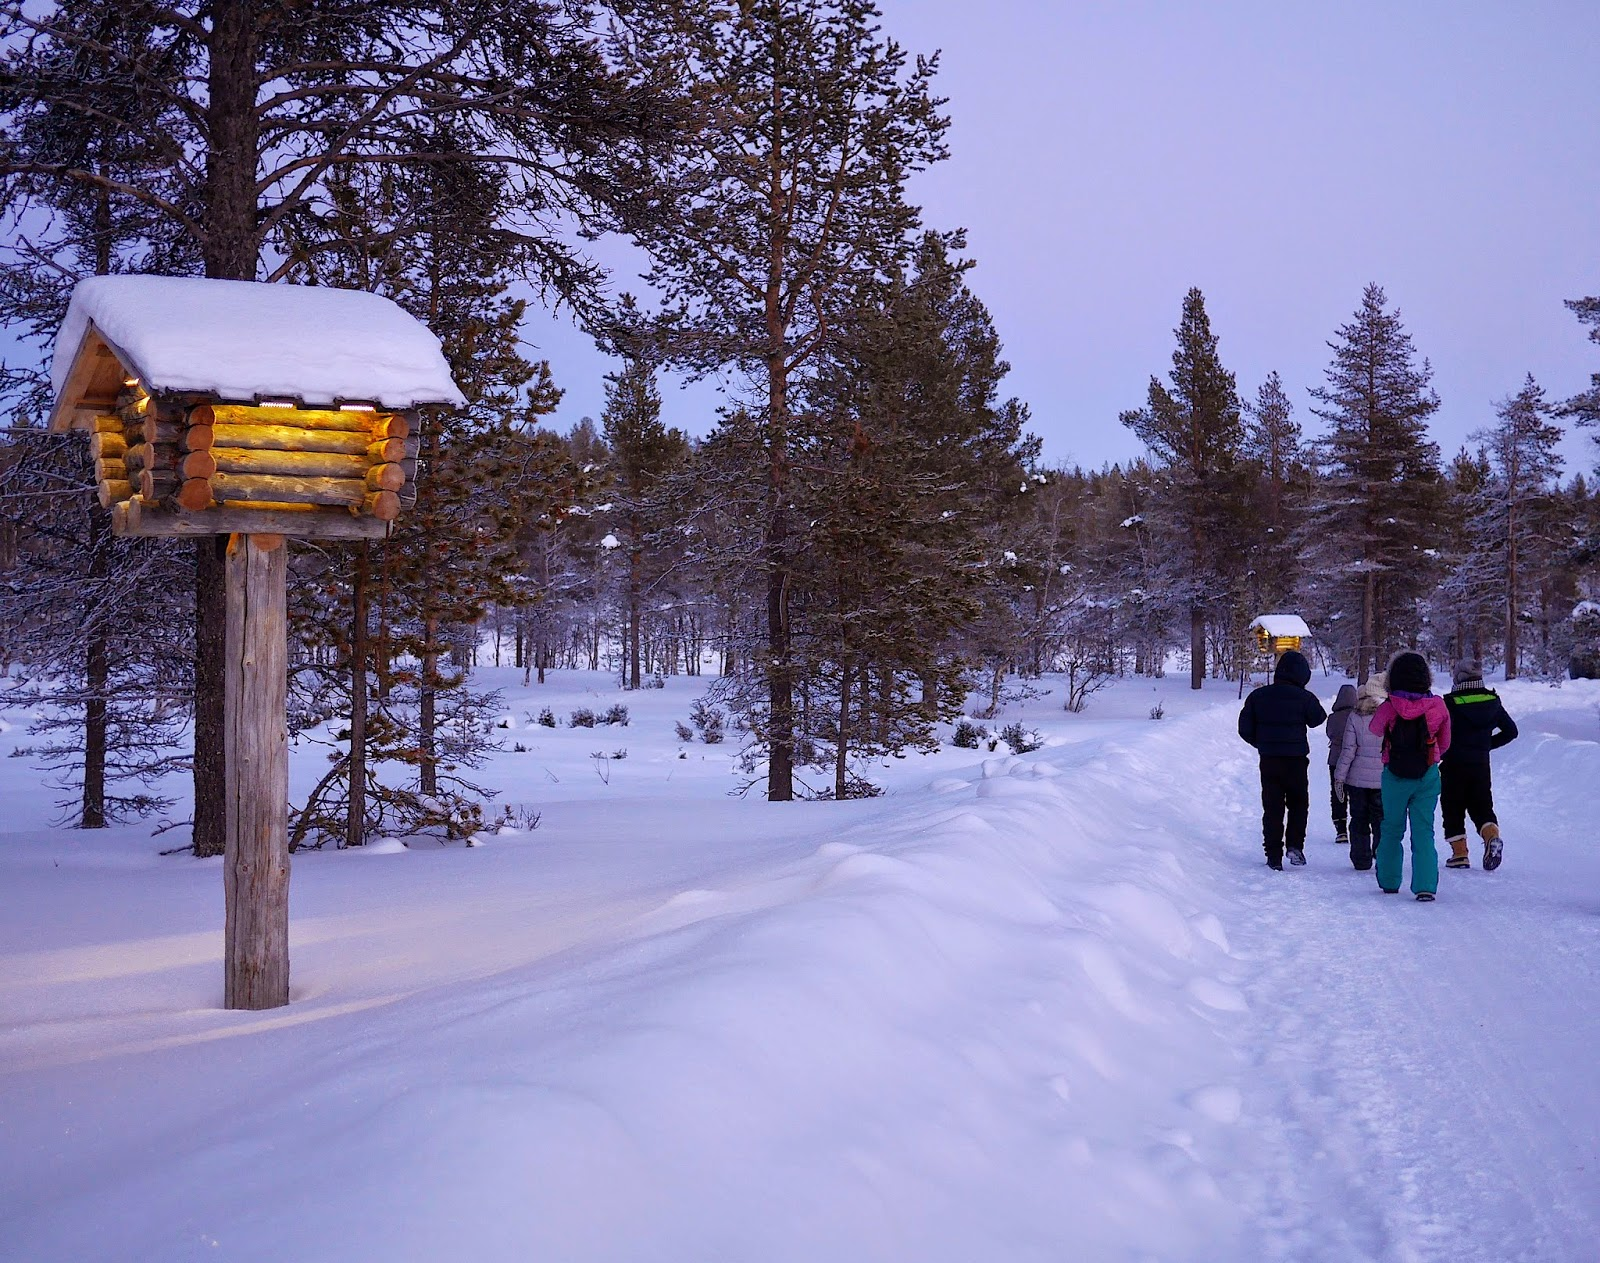 Winter at Kakslauttanen, Finnish Lapland